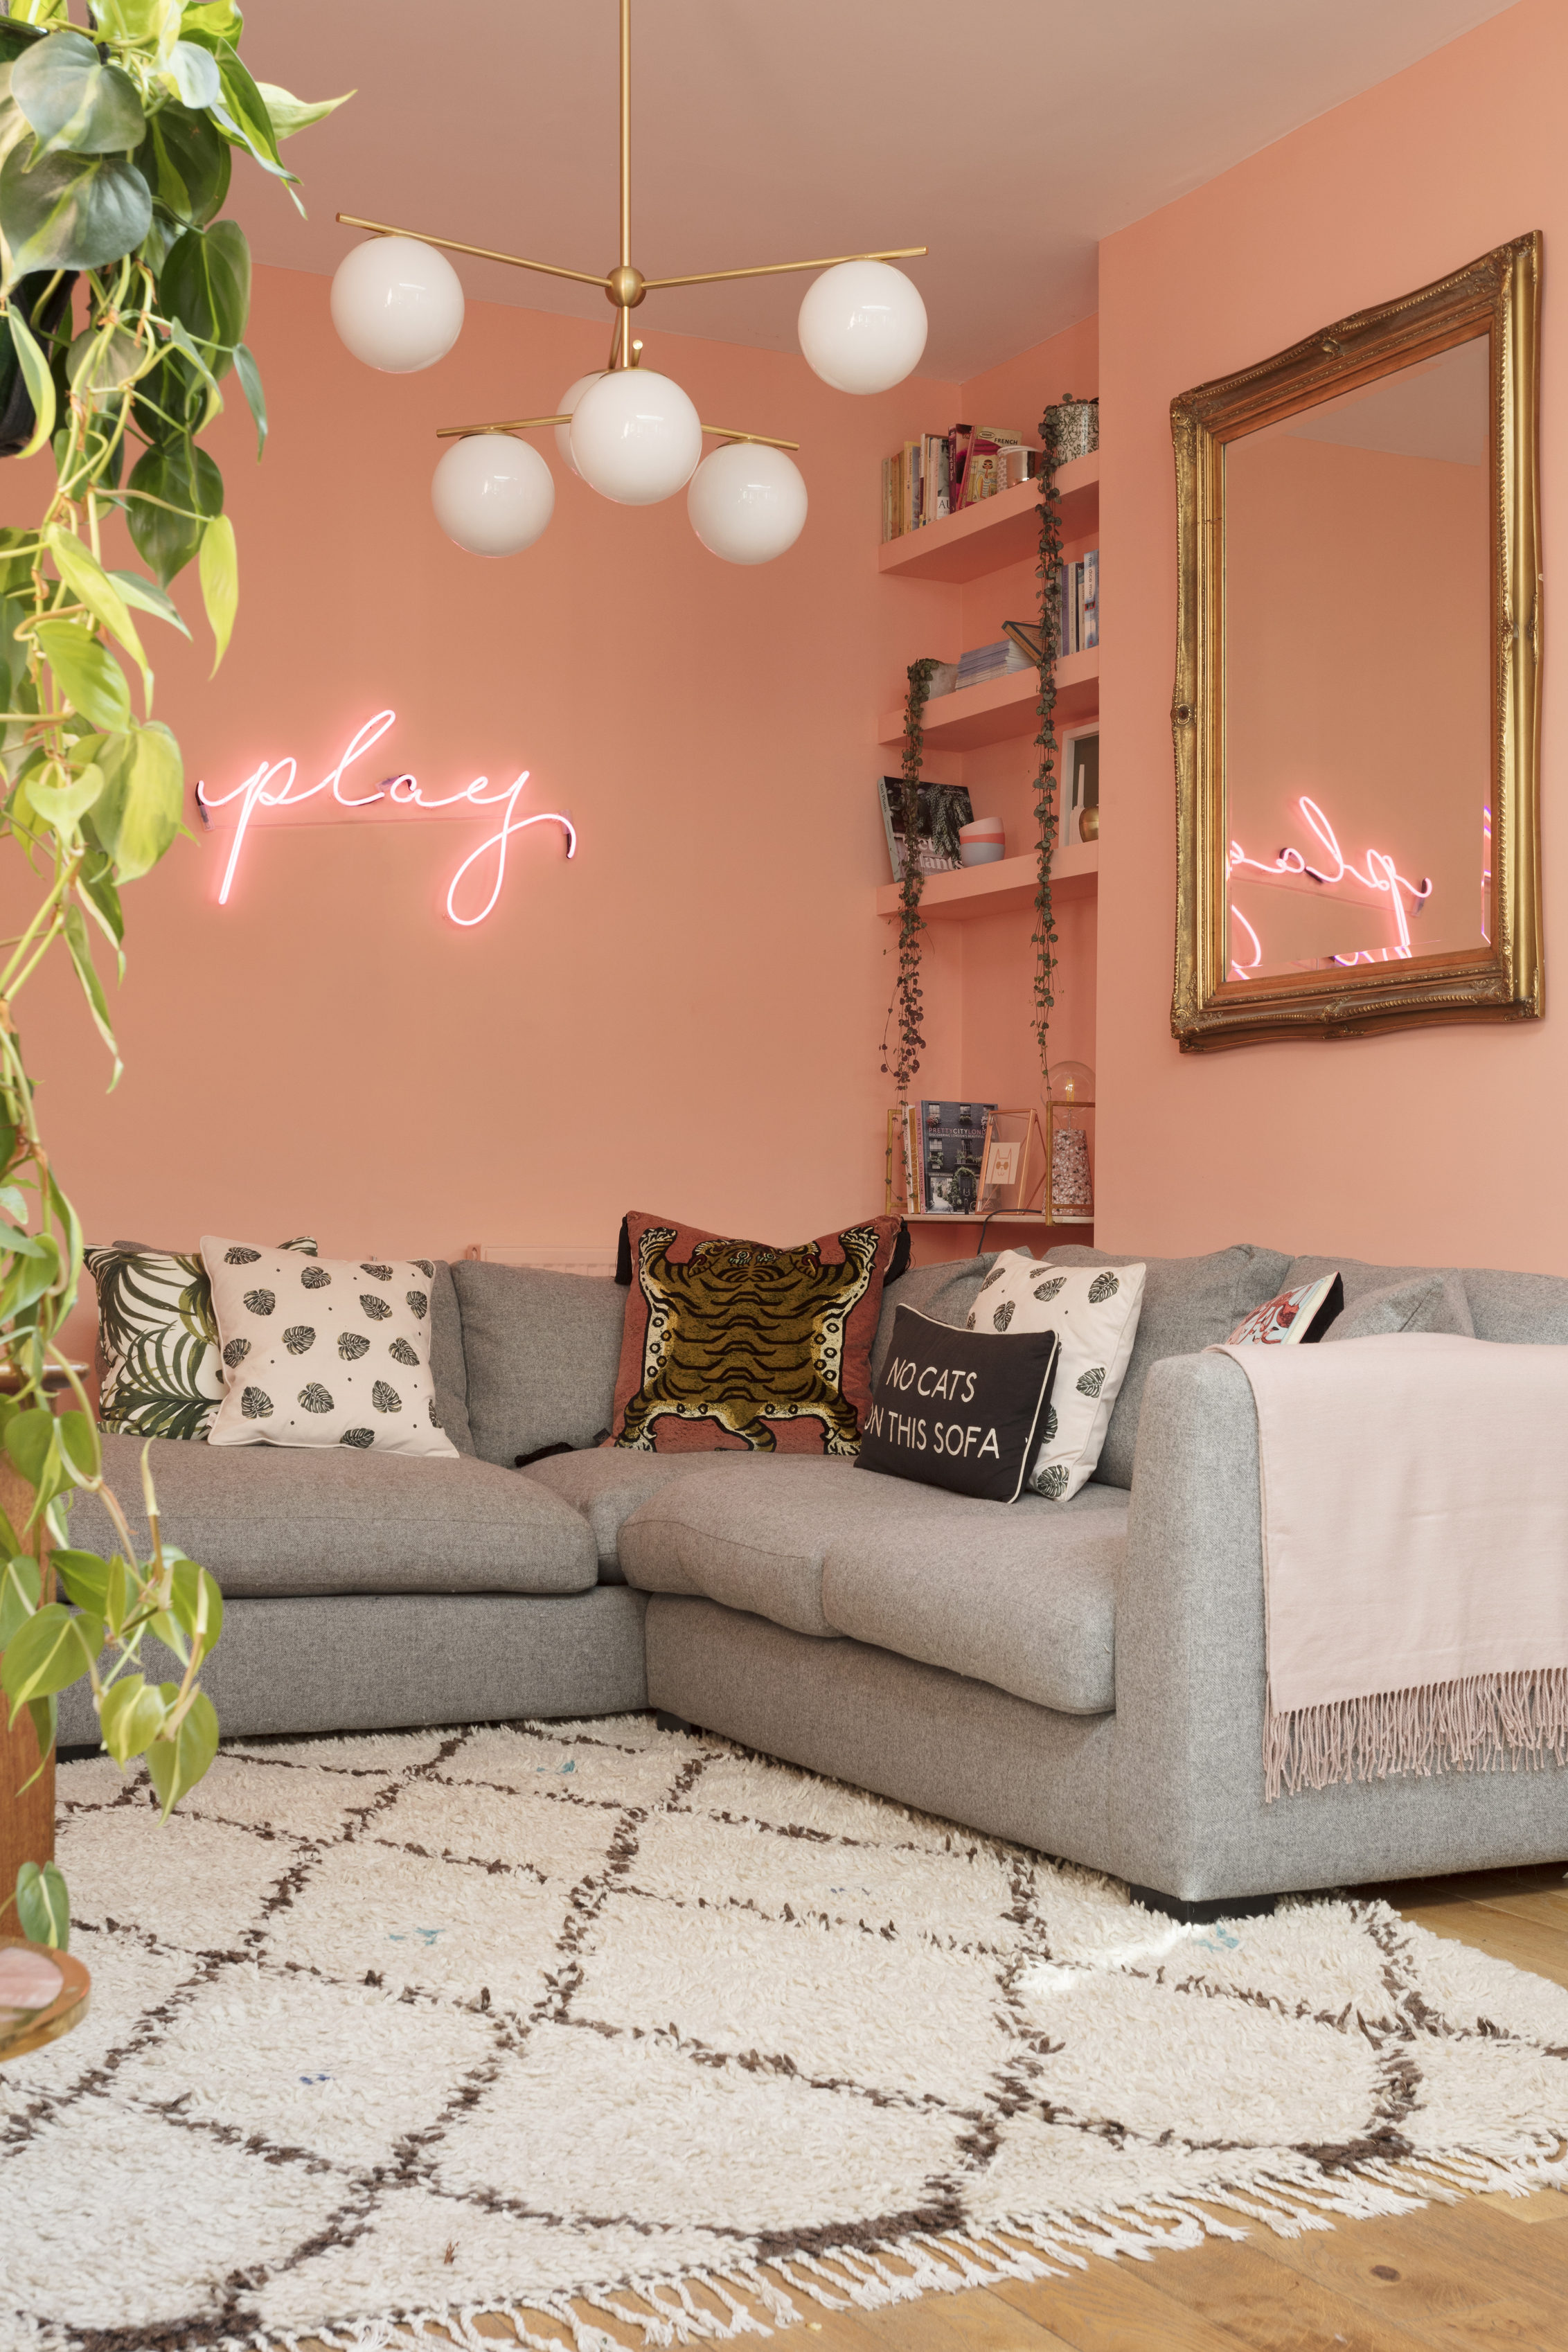 Emily Murray's living room painted in a vibrant peachy pink. ((Susie Lowe/Ryland Peters & Small/PA)